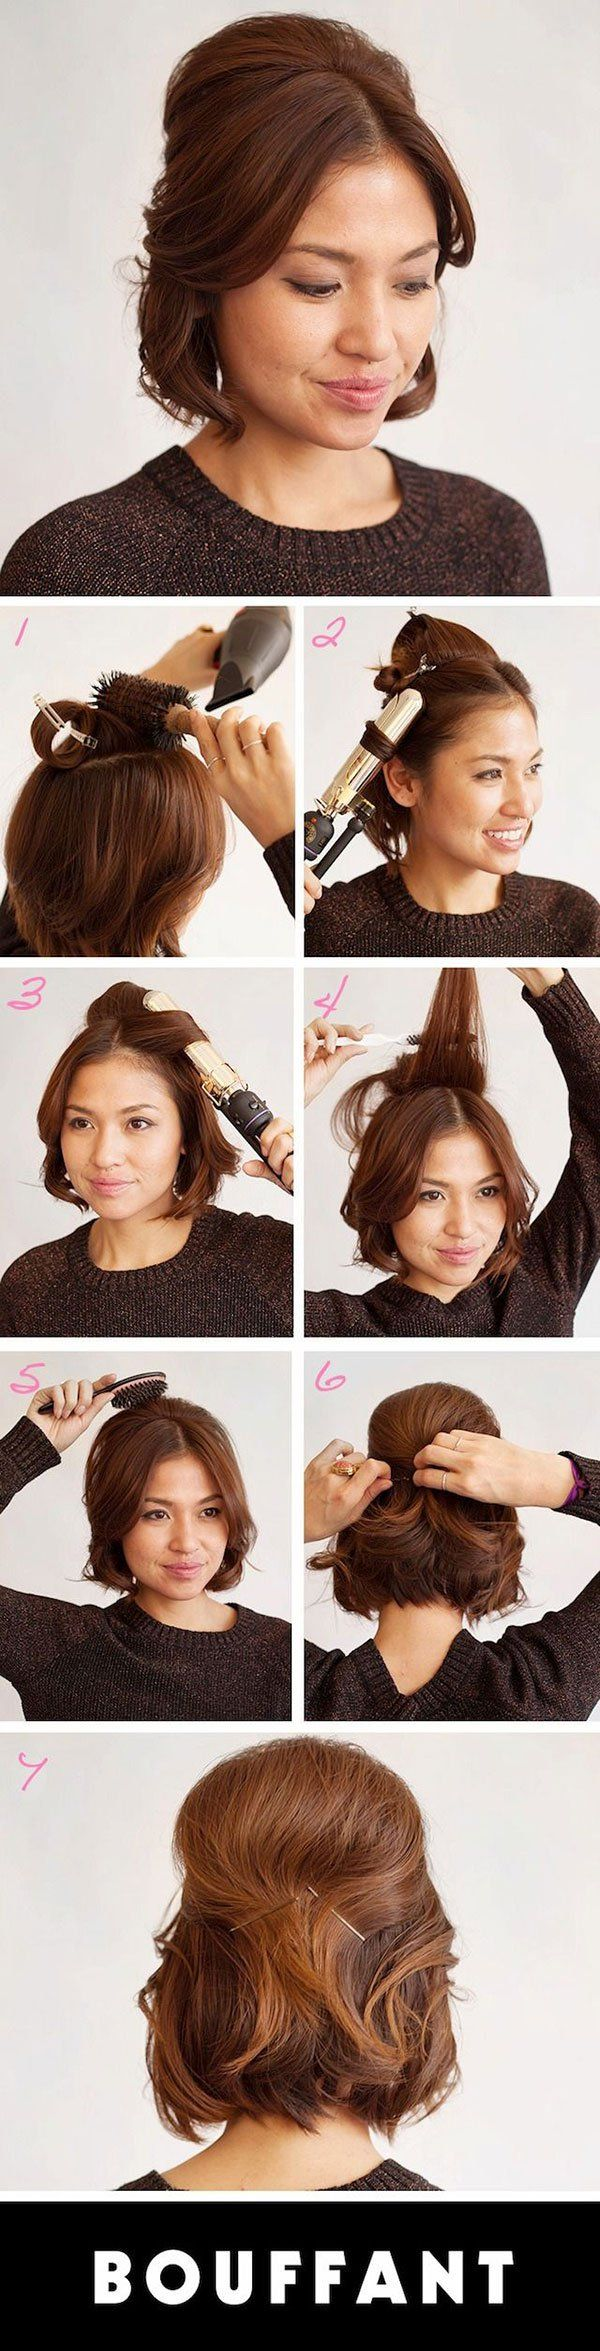 Easy Formal Hairstyles For Short Hair | Hairstyle ...